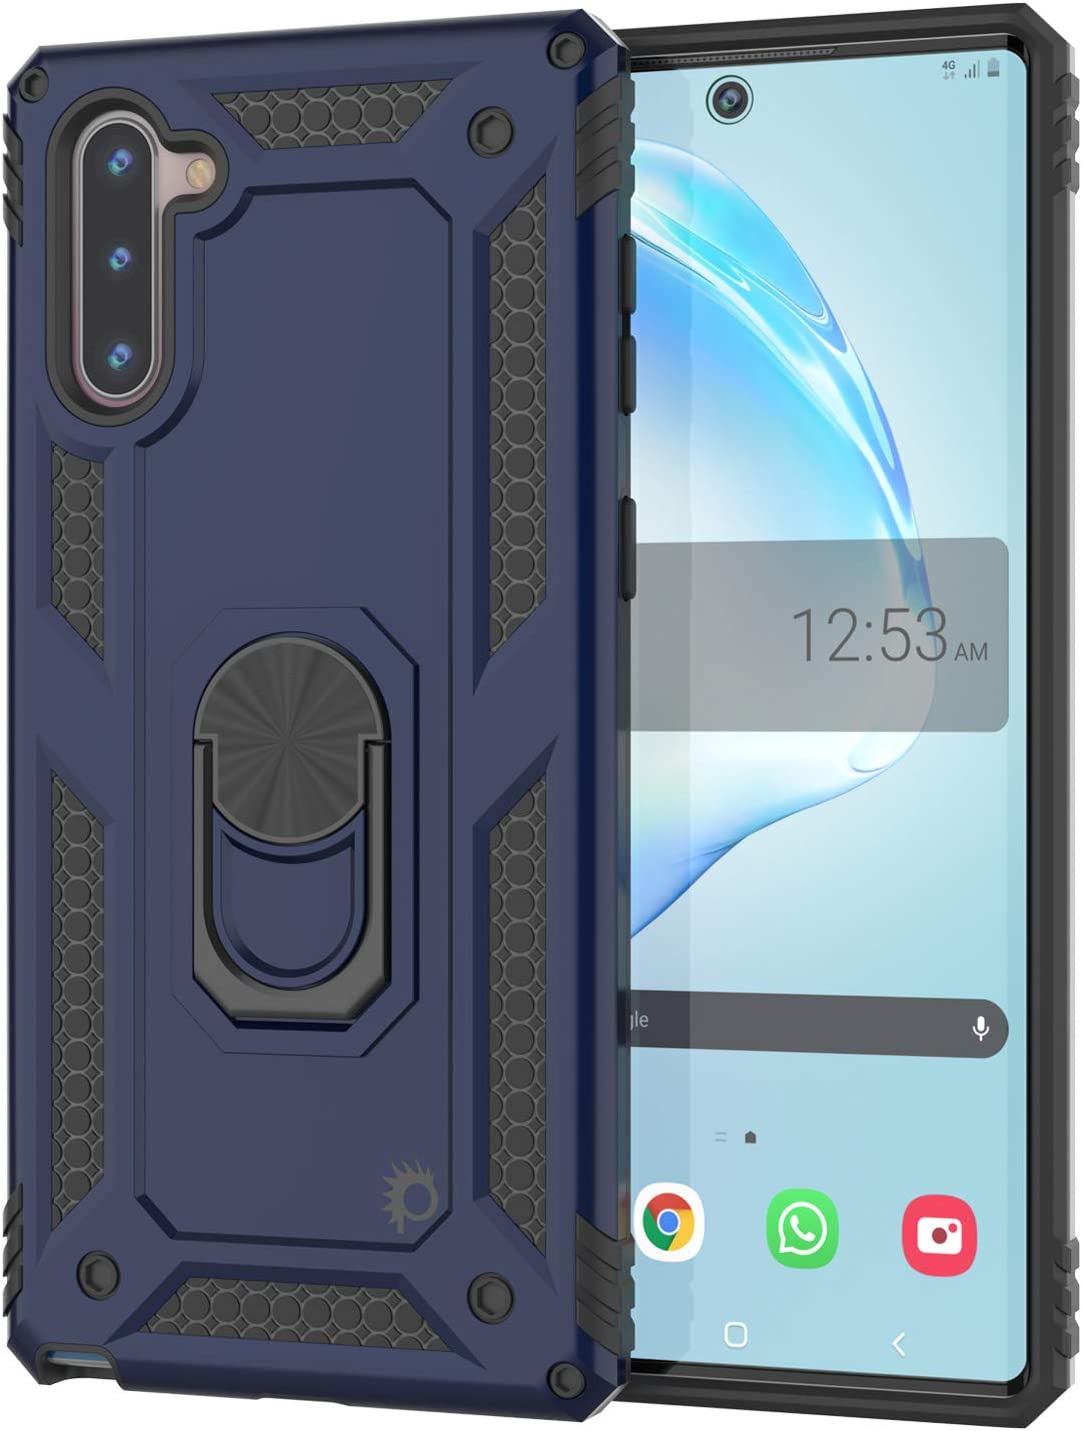 Punkcase Galaxy Note 10 Case [ArmorShield Series] Military Style Protective Dual Layer Case W/Metal Ring Grip Holder & Kickstand l TPU Bumper | Full Body Protection for Samsung Note 10 (6.3